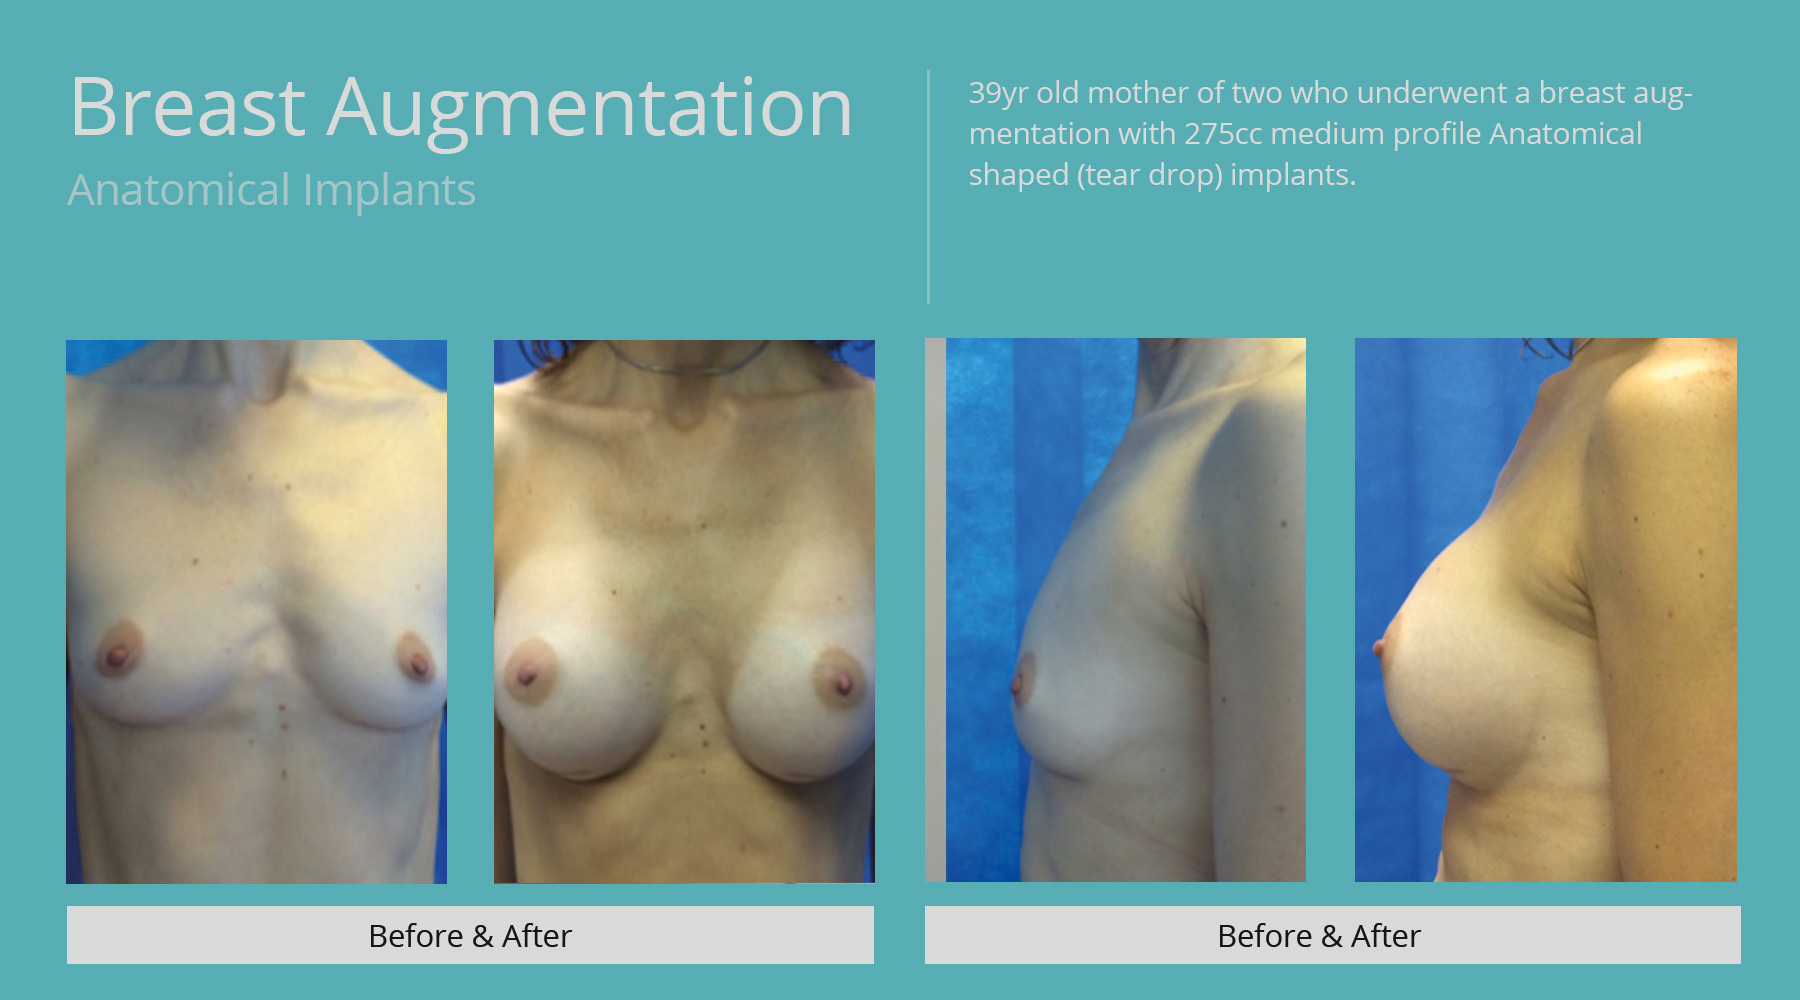 Breast-Augmentation-anatomical-10